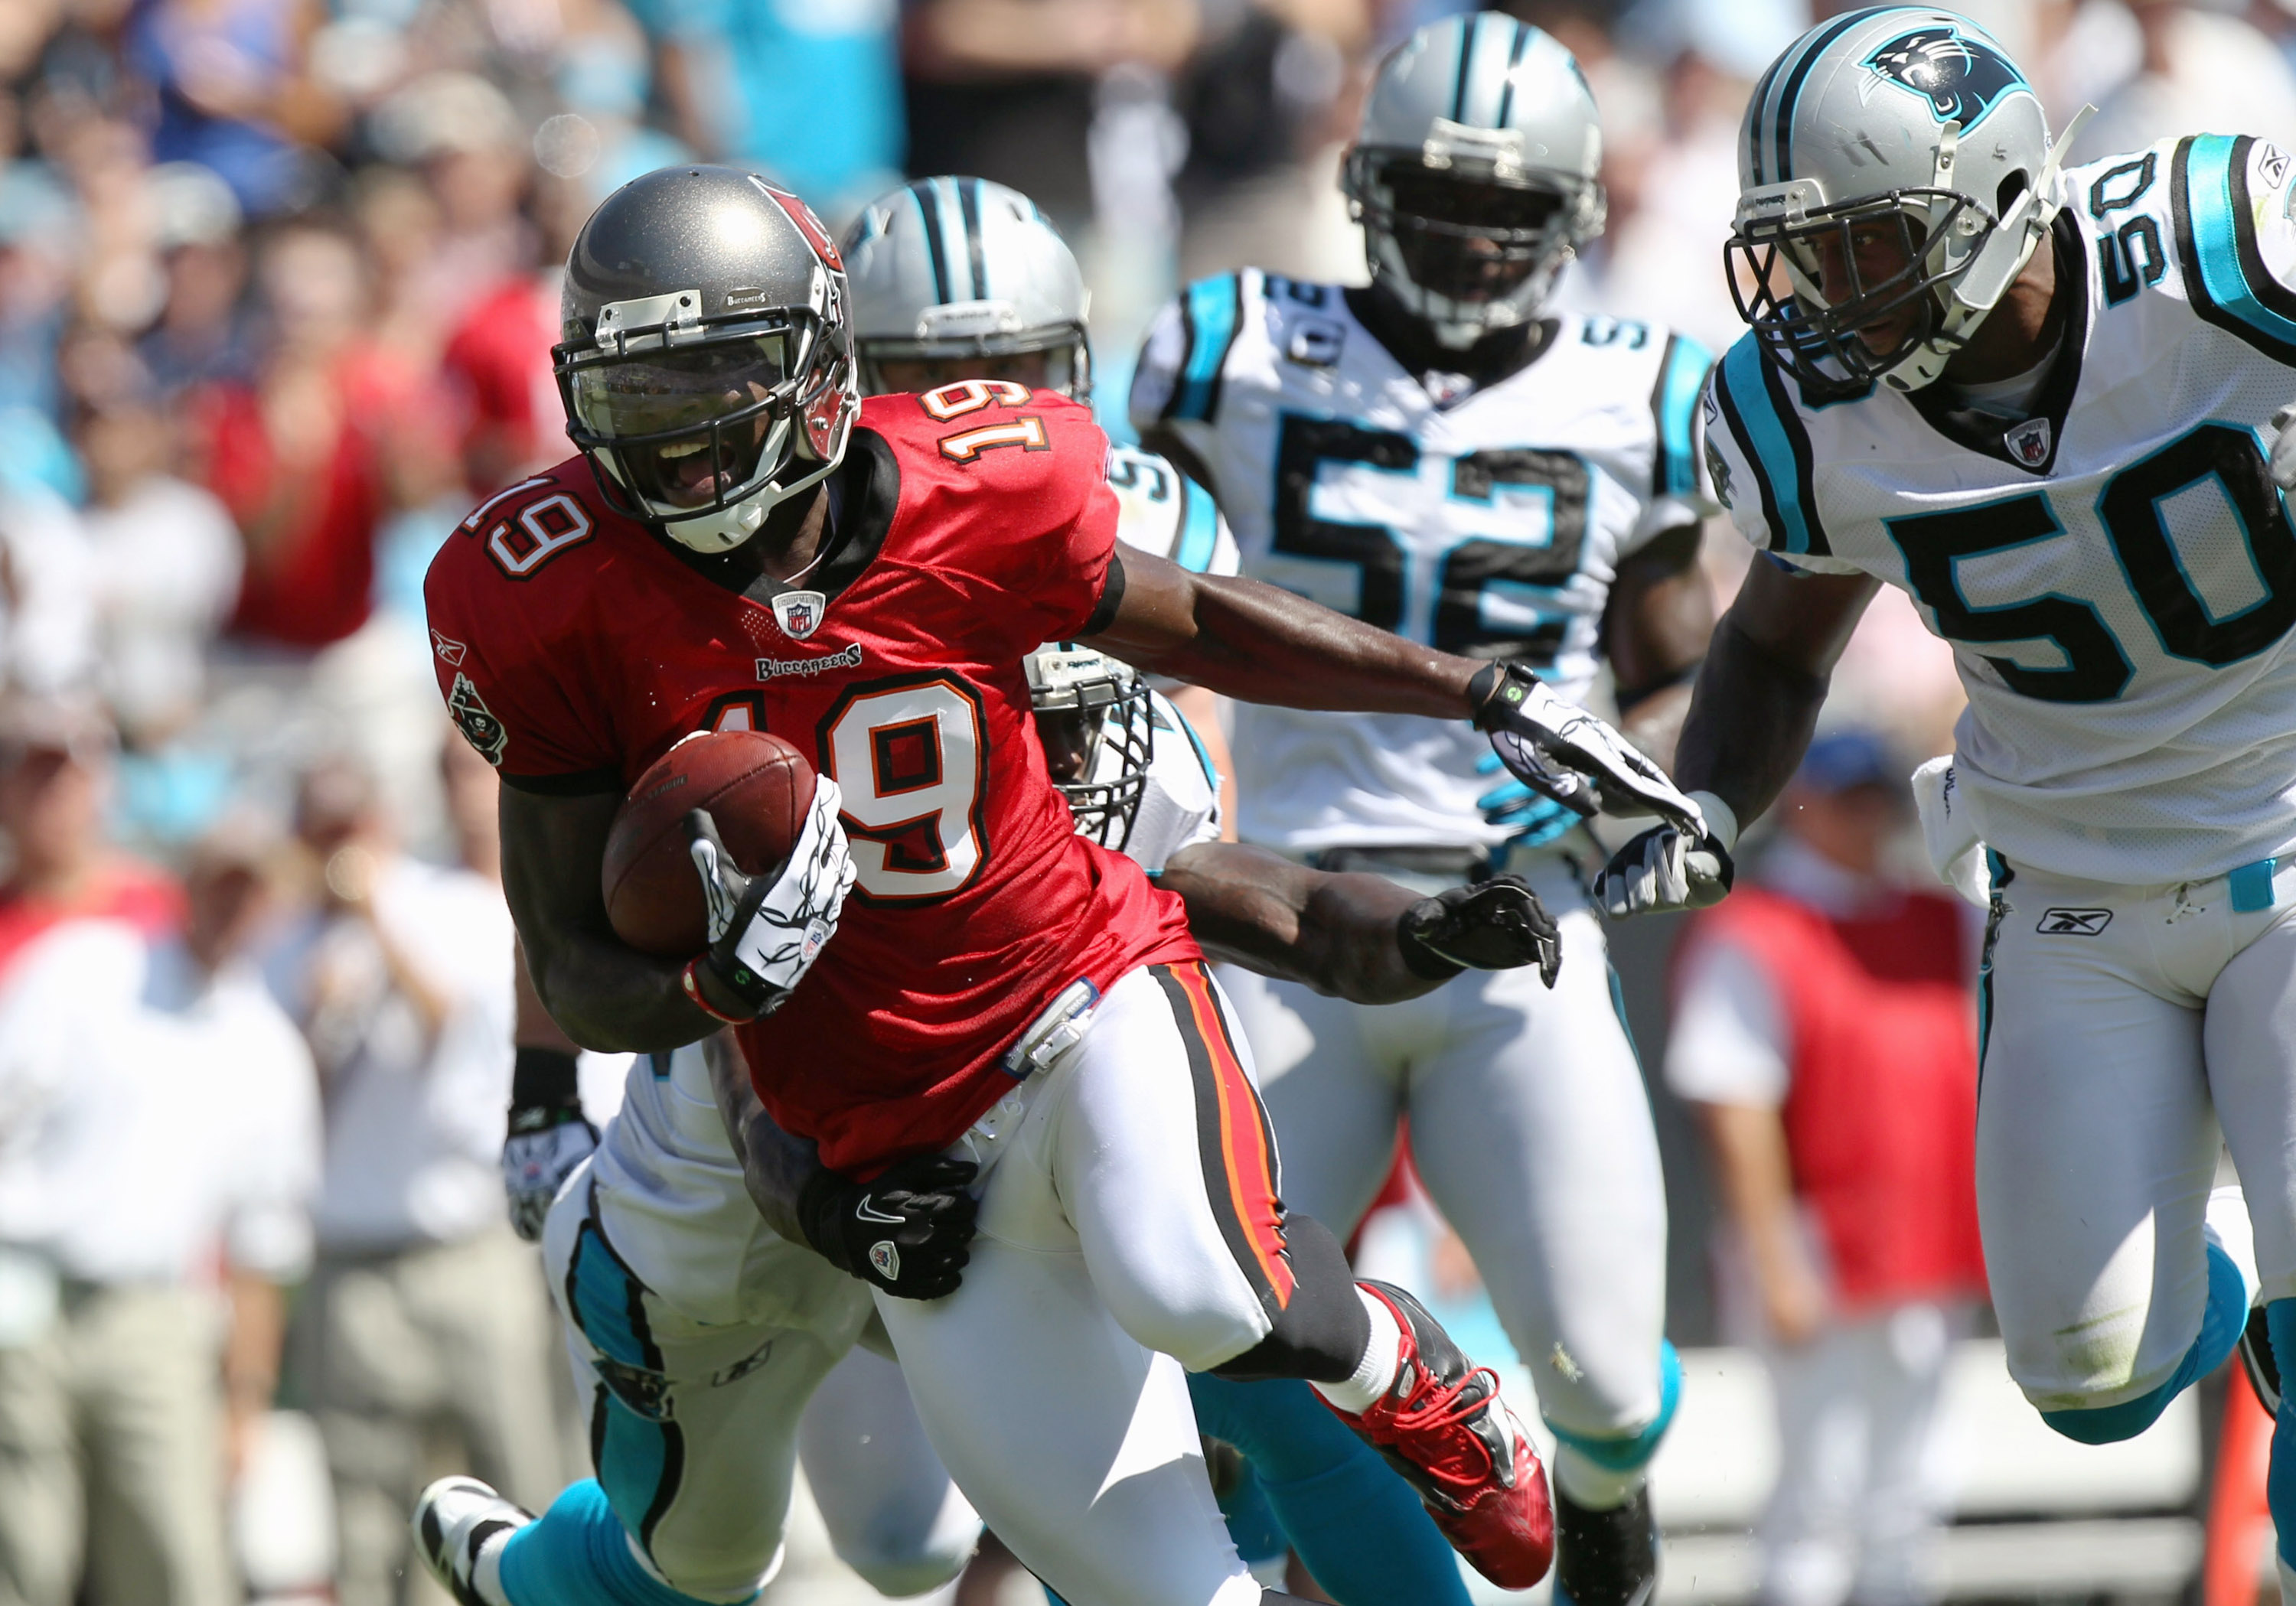 CHARLOTTE, NC - SEPTEMBER 19:  Mike Williams #19 of the Tampa Bay Buccaneers breaks a tackle on his way to scoring a touchdown against the Carolina Panthers during their game at Bank of America Stadium on September 19, 2010 in Charlotte, North Carolina.